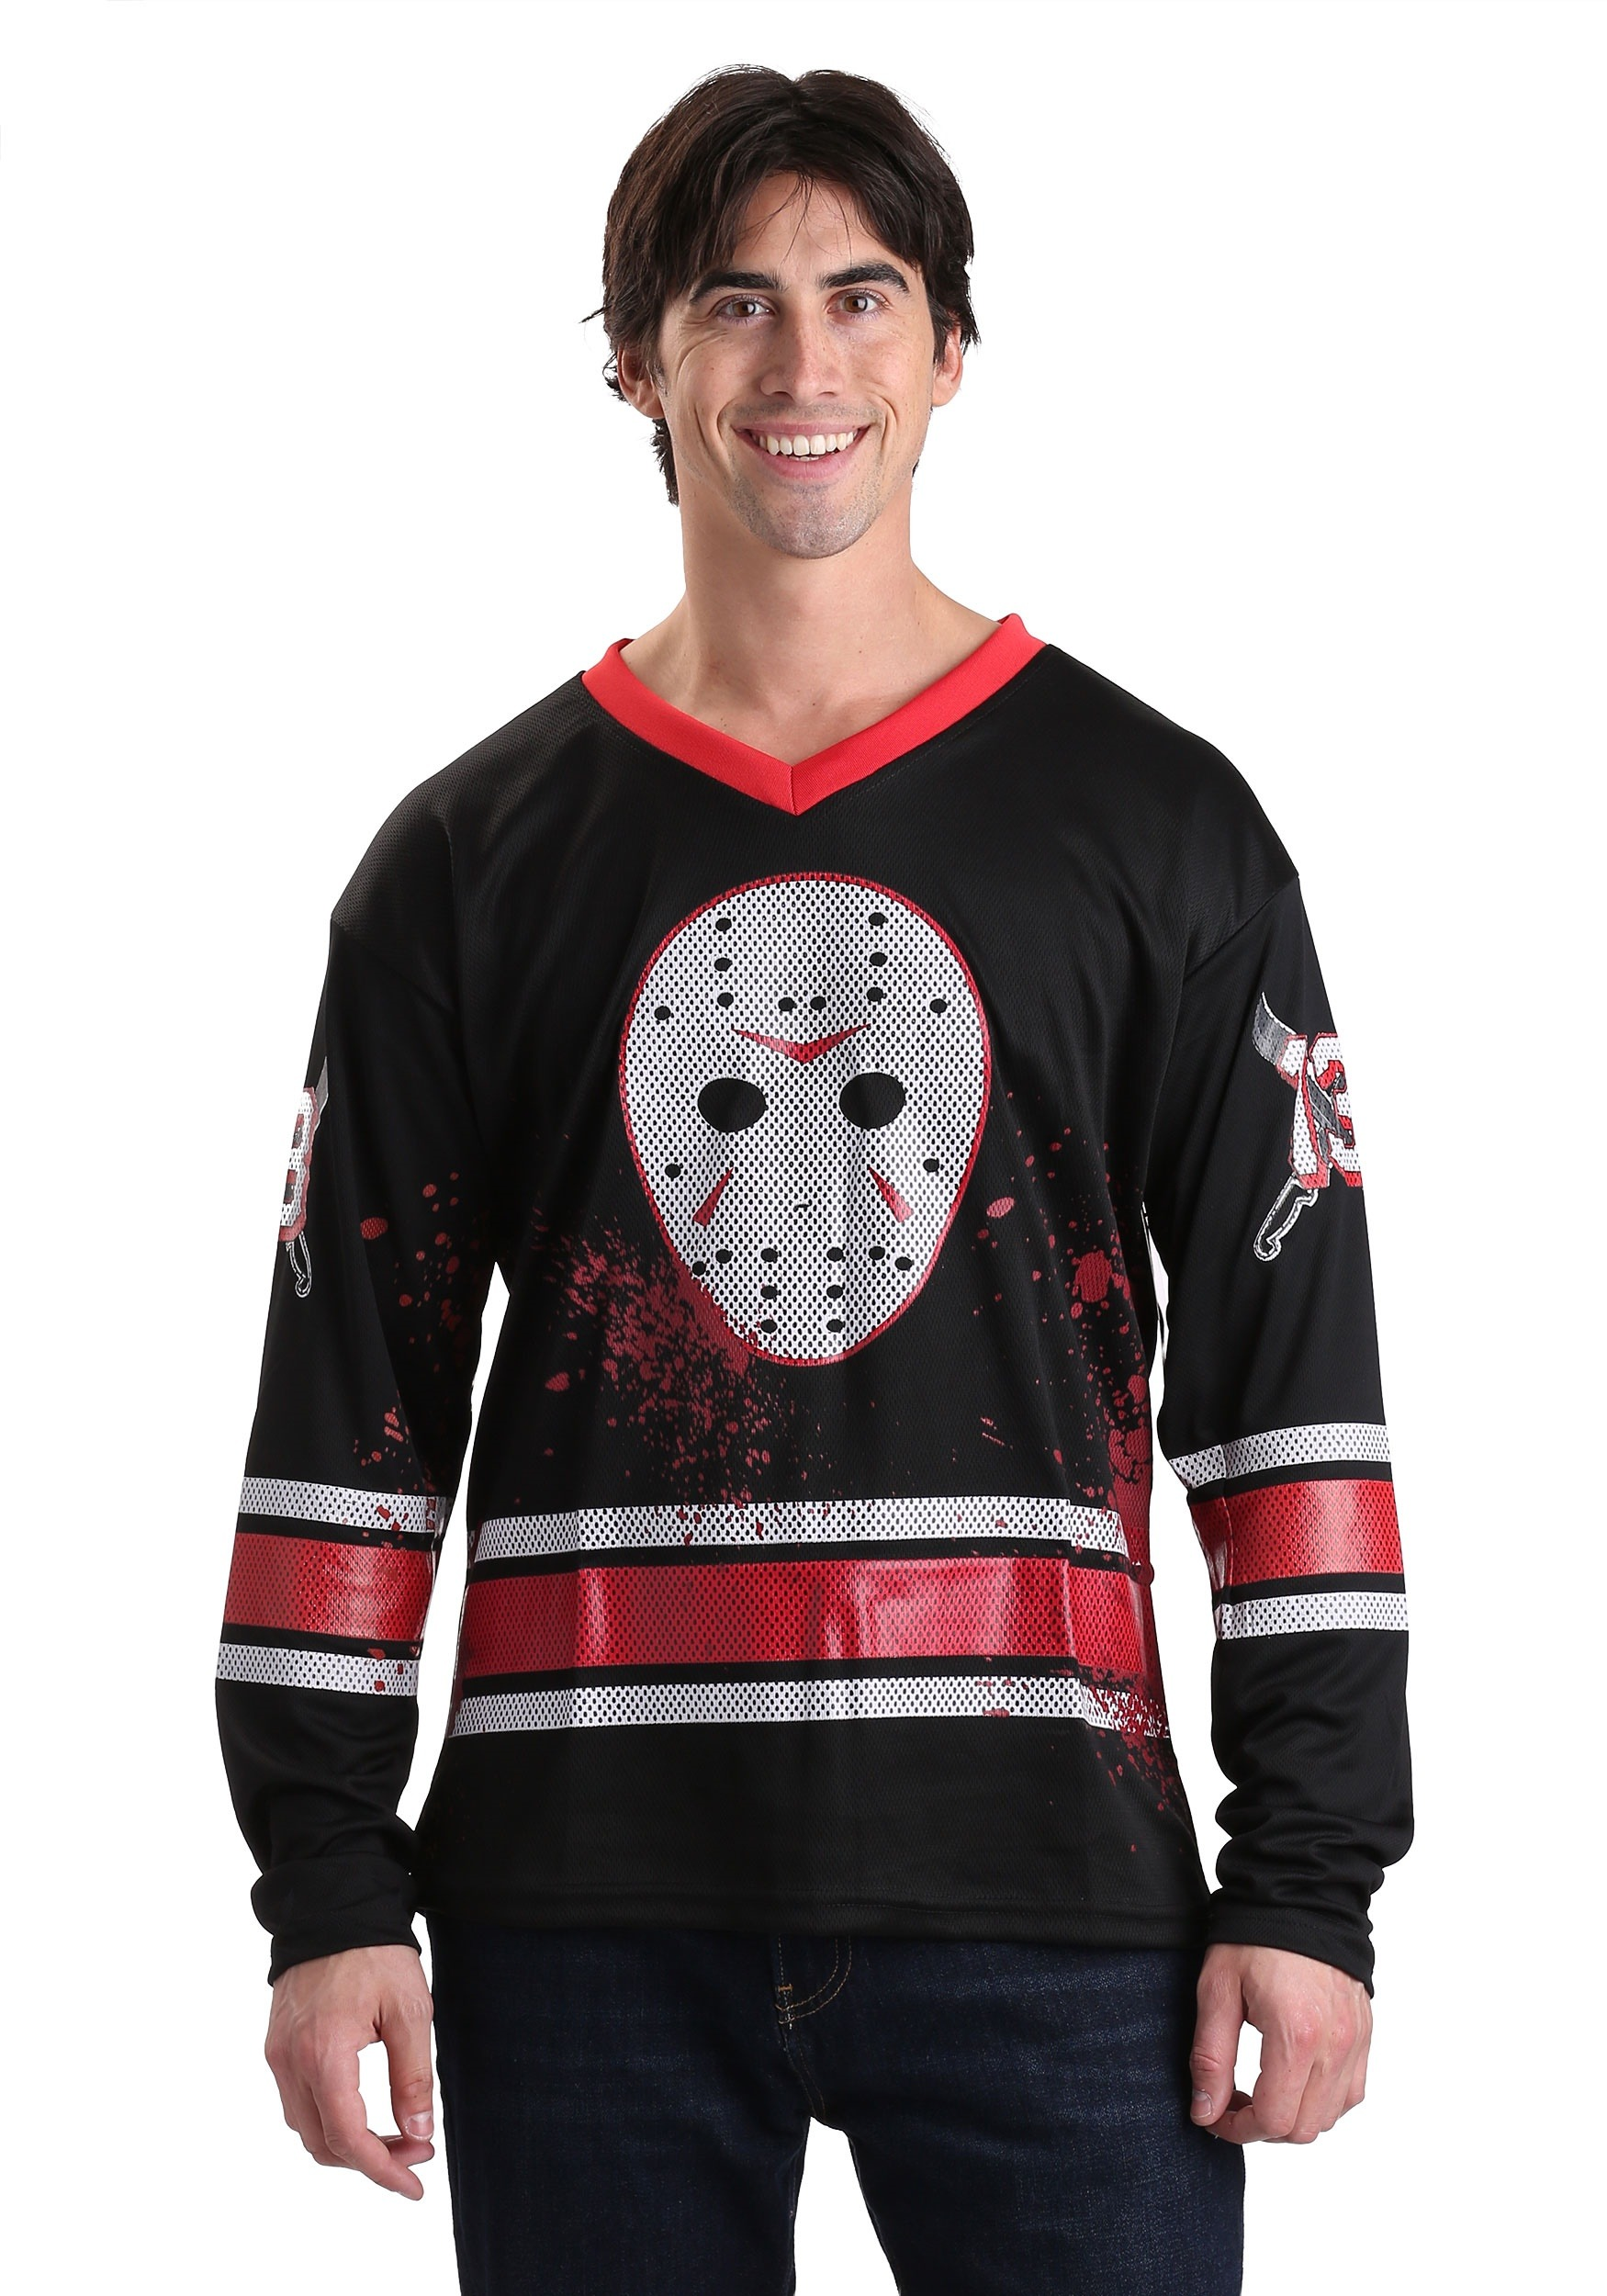 Jason Voorhees Hockey Jersey For Adults